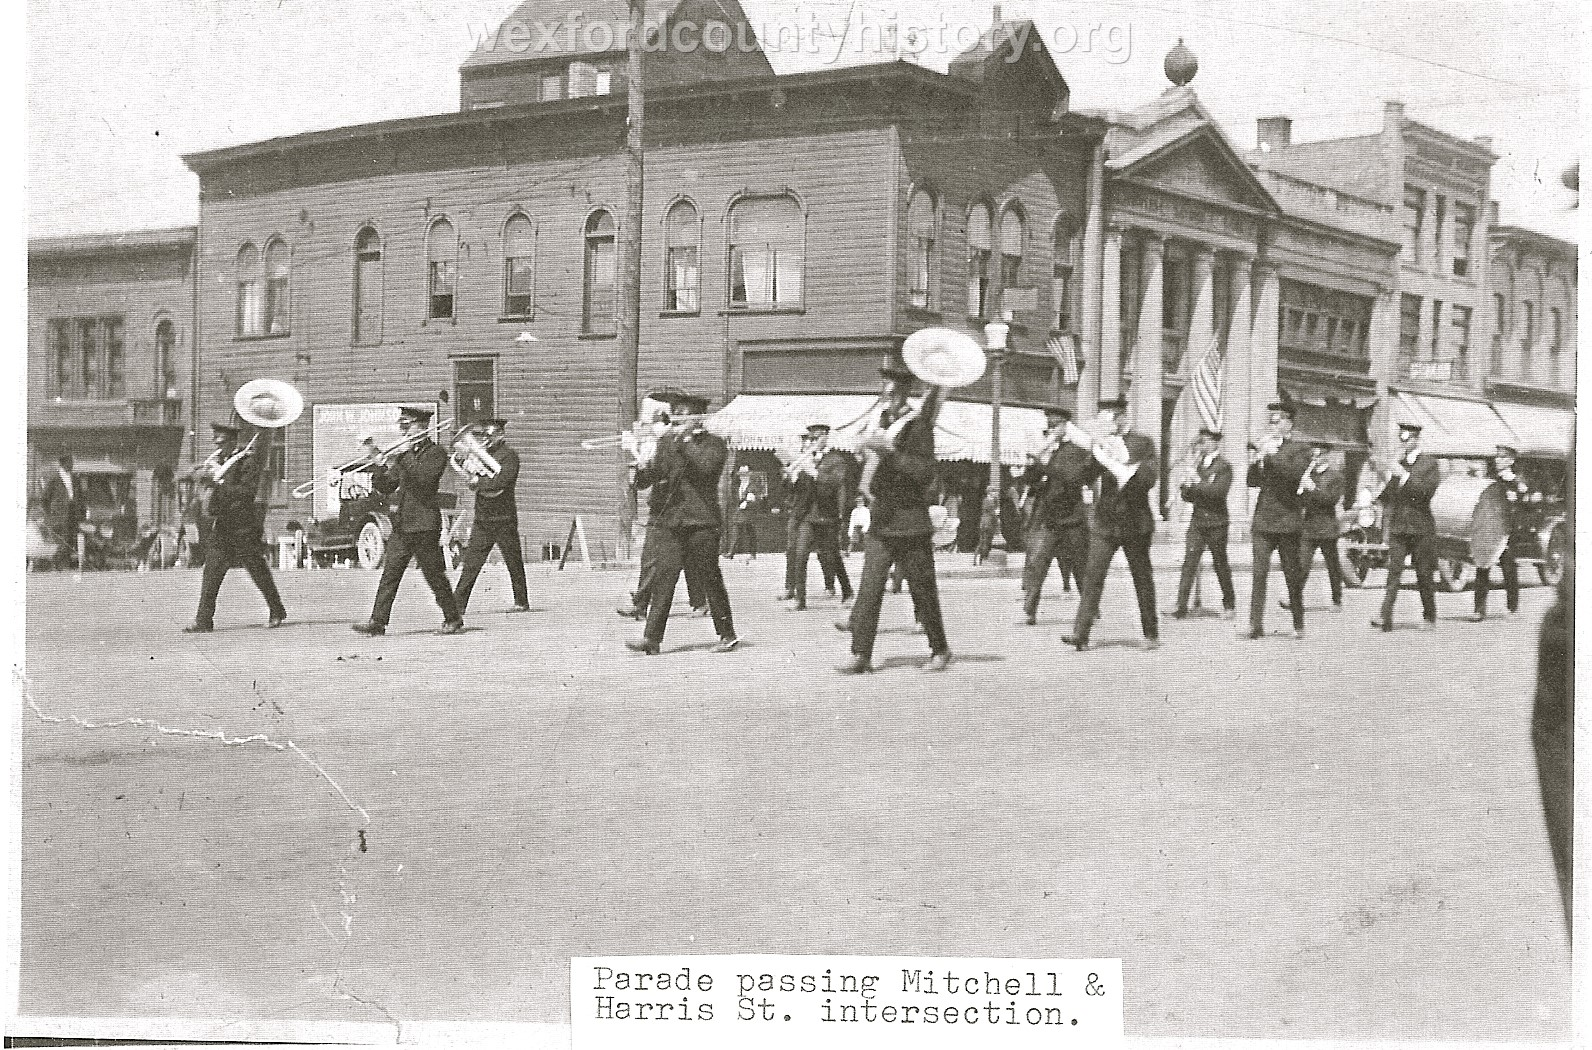 Cadillac-Parade-Parade-passing-the-intersection-of-North-Mitchell-Street-And-Harris-Street